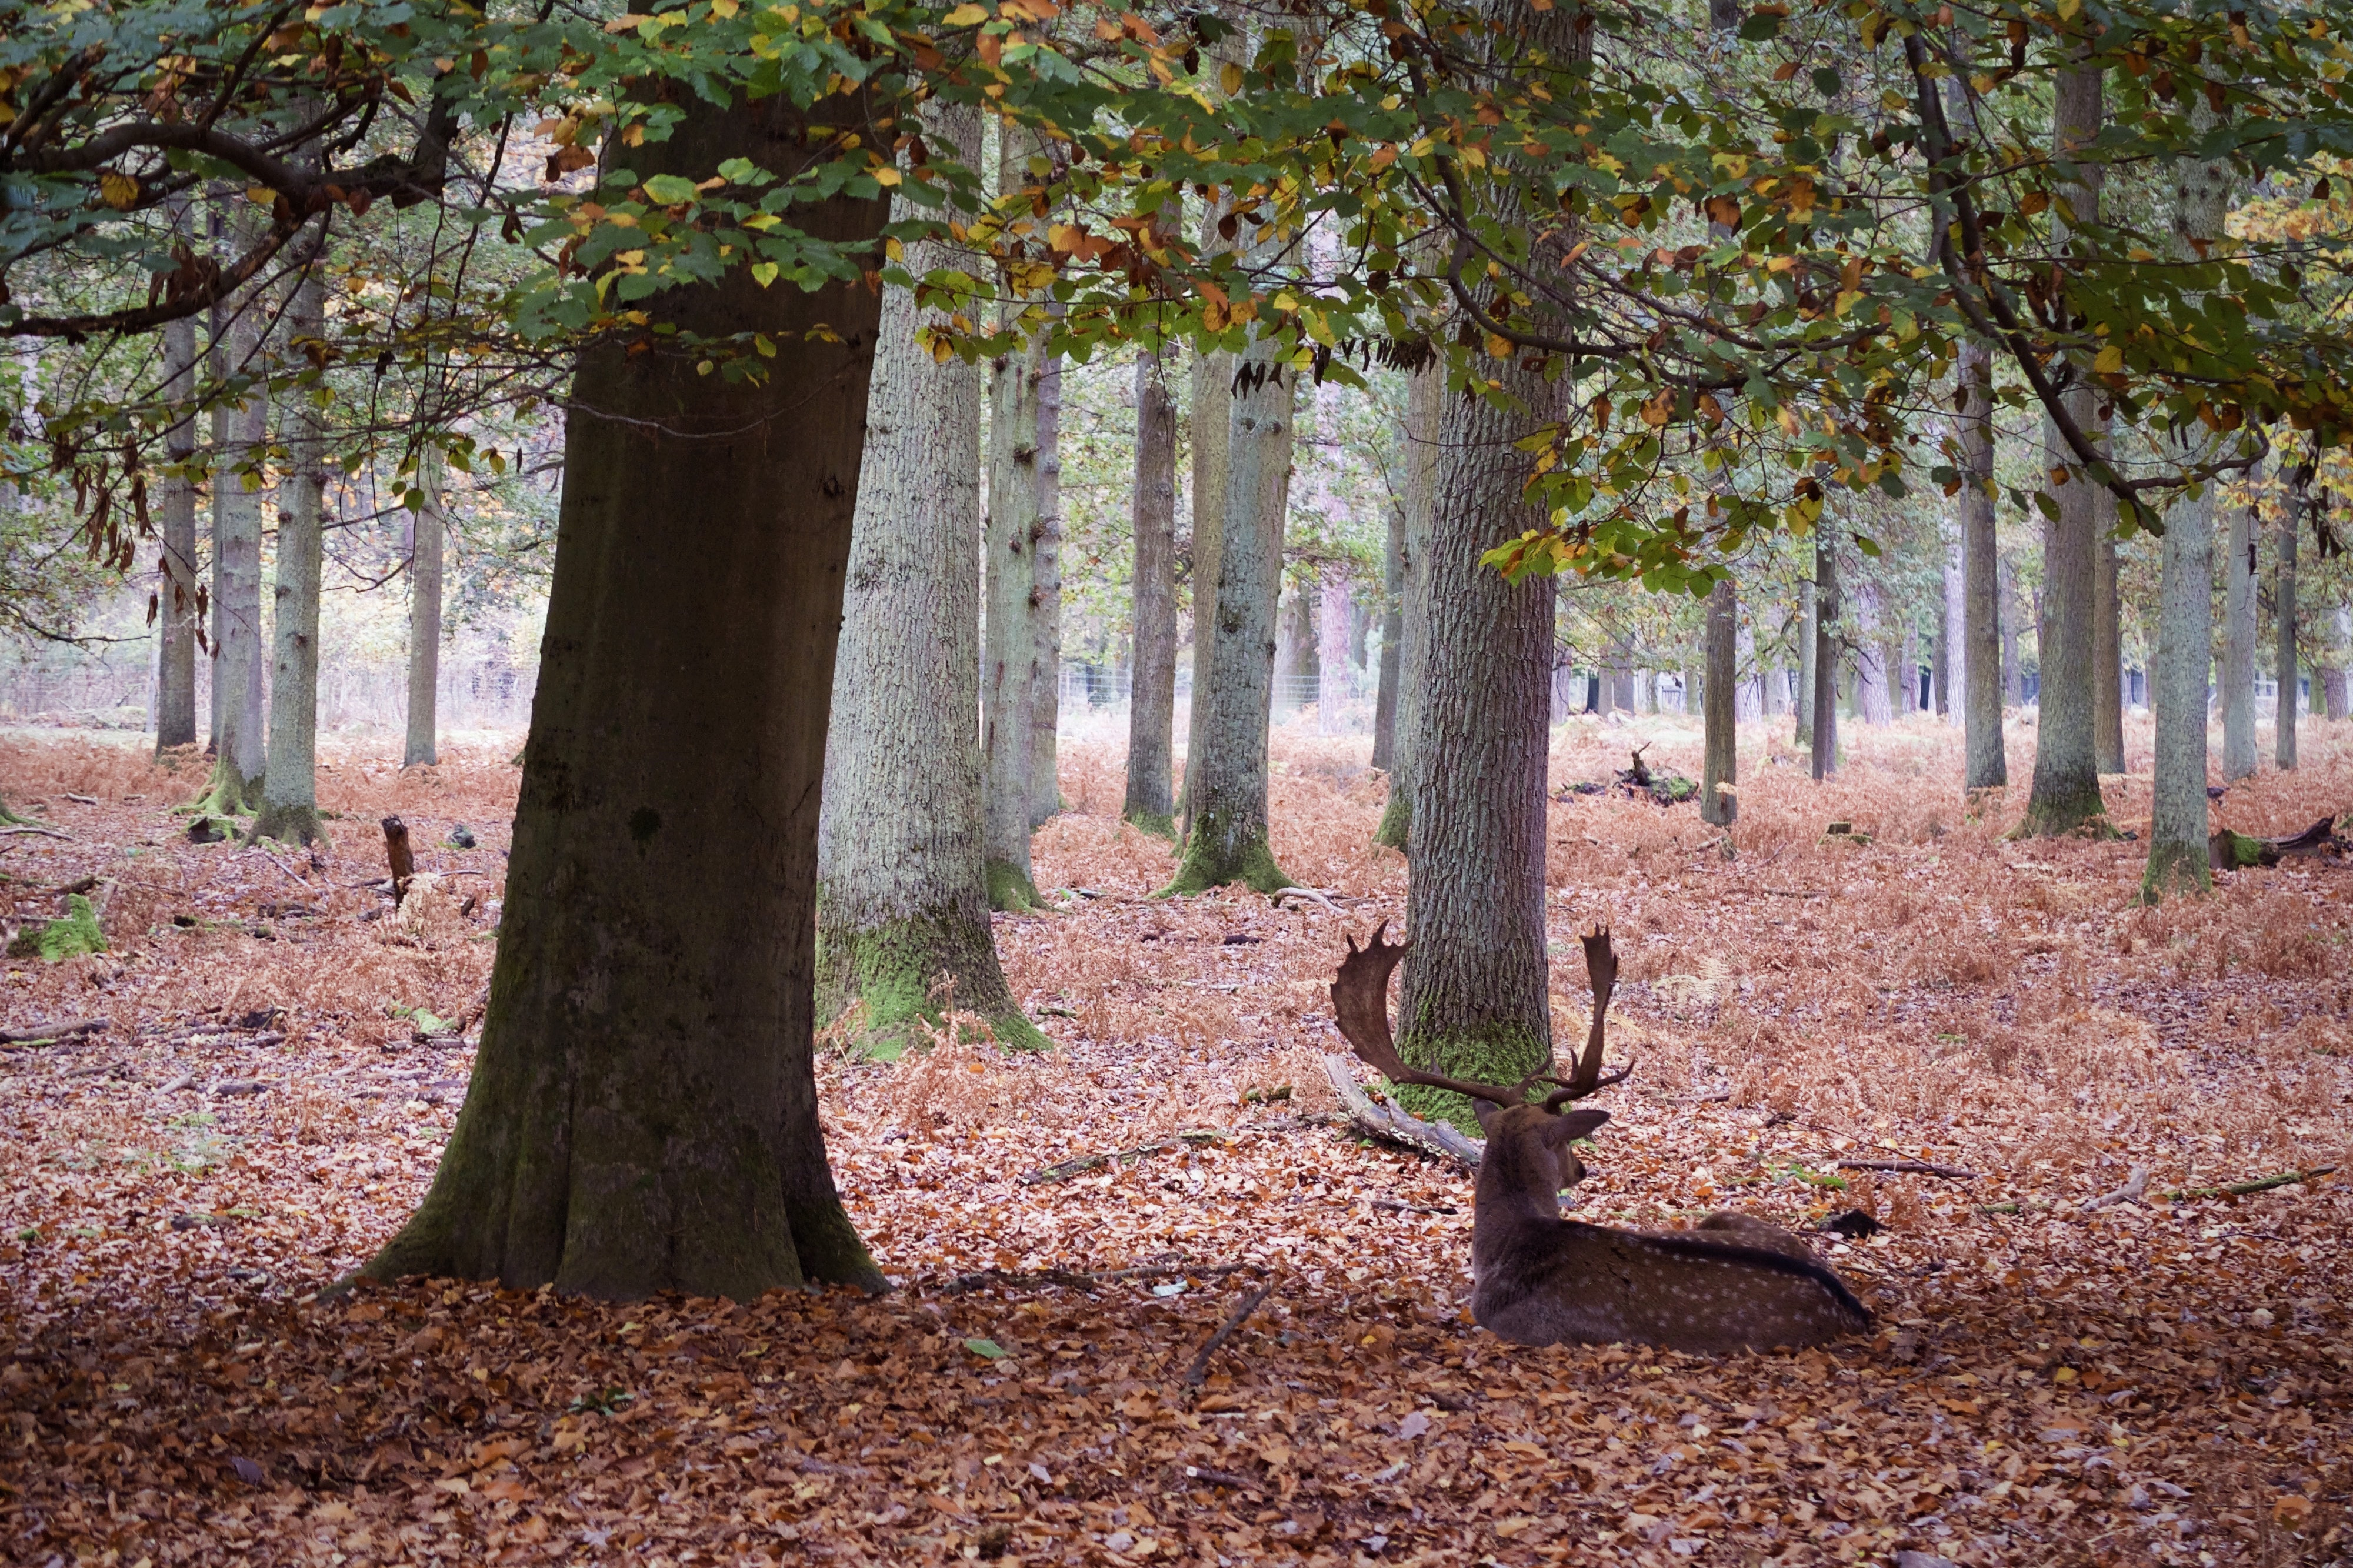 Deer laying in the forest